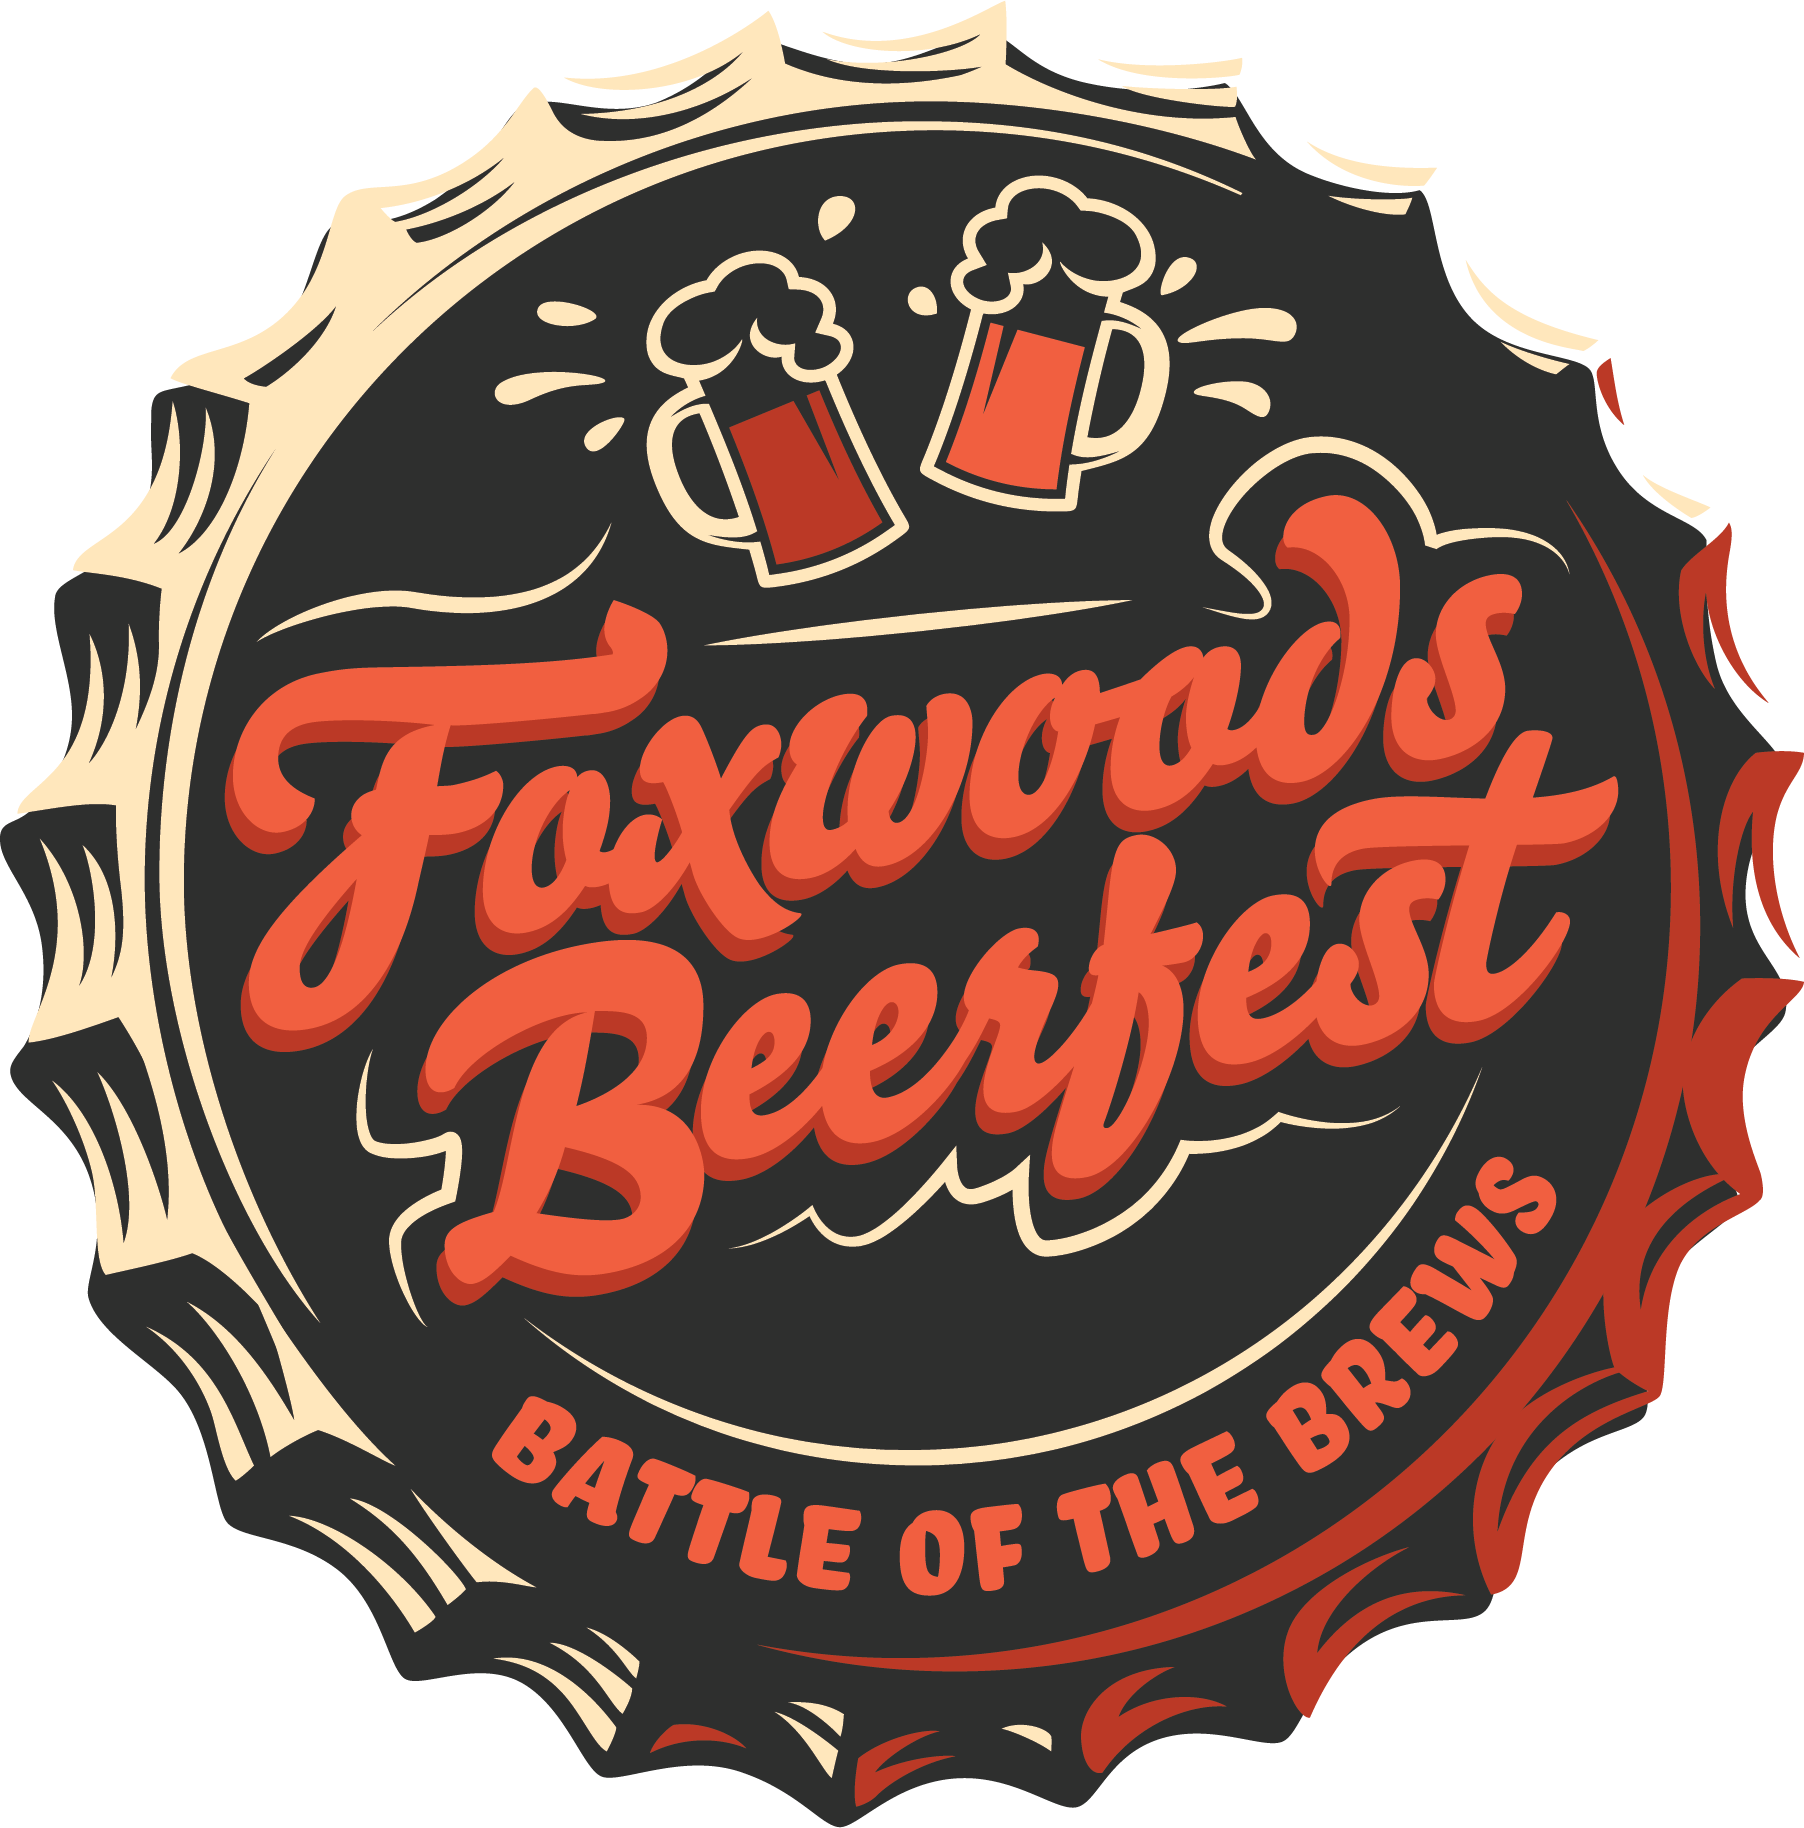 November 23, 2019: Beerfest: Battle of the Brews